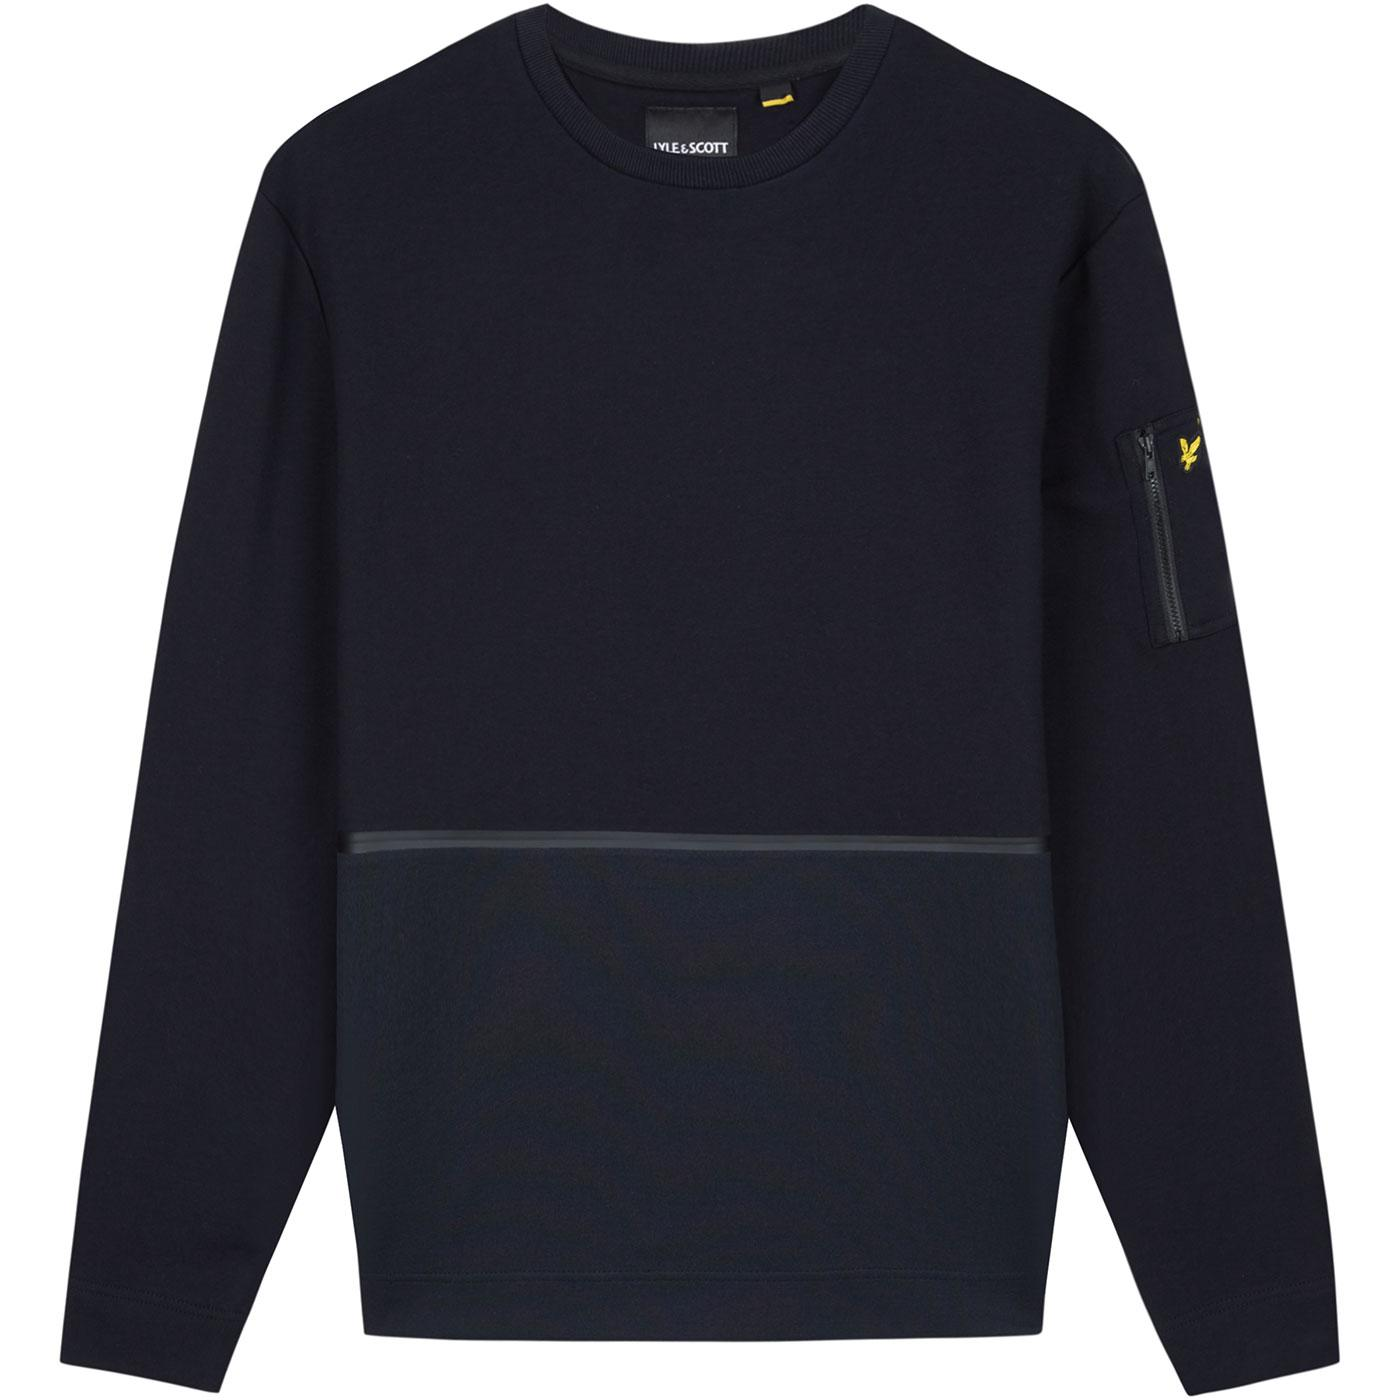 LYLE & SCOTT Men's Retro Casuals Sweatshirt BLACK